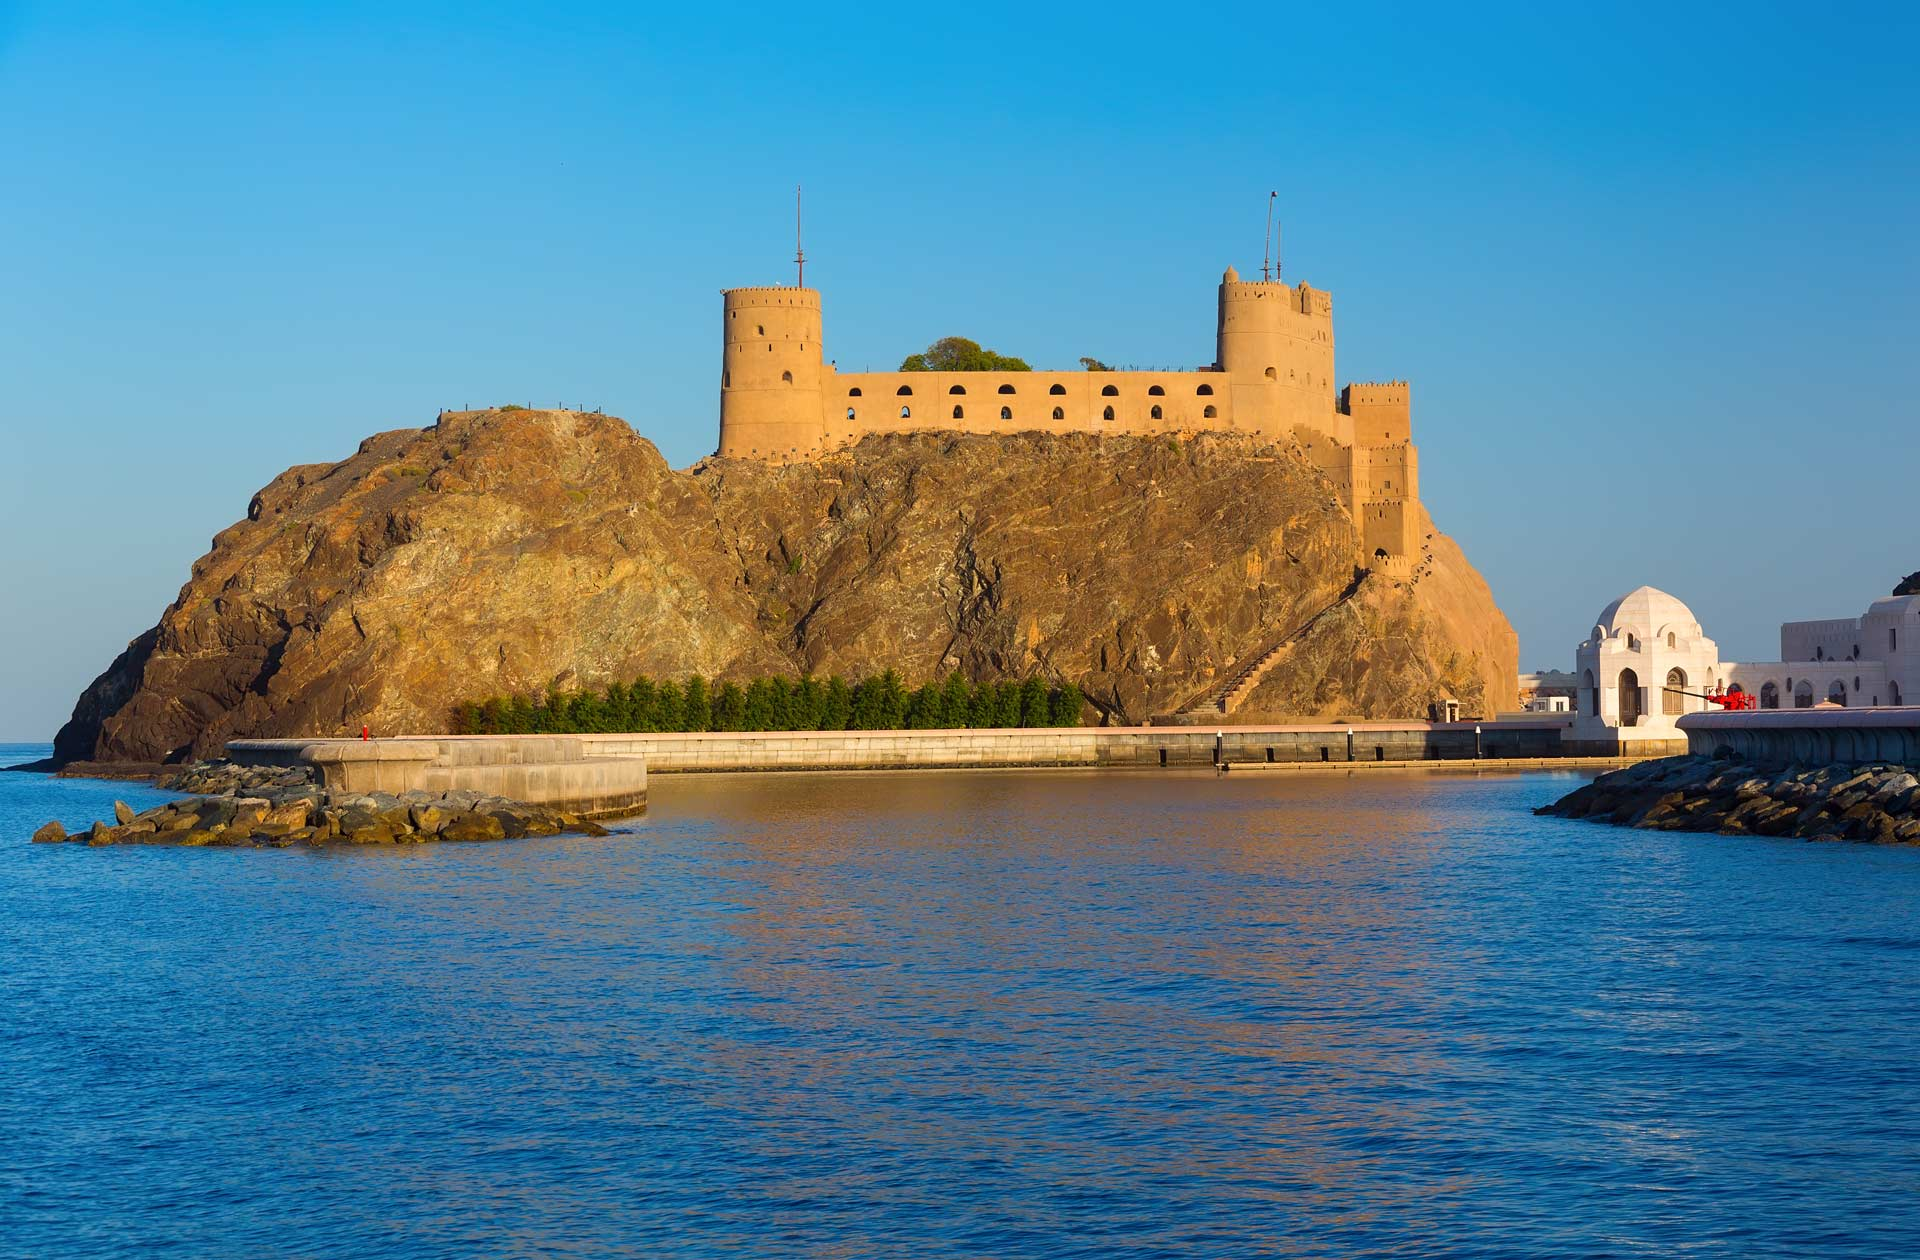 Oman.Impressive twin forts at the entrance of Old Muscat's harbor near Sultan Qaboos palace